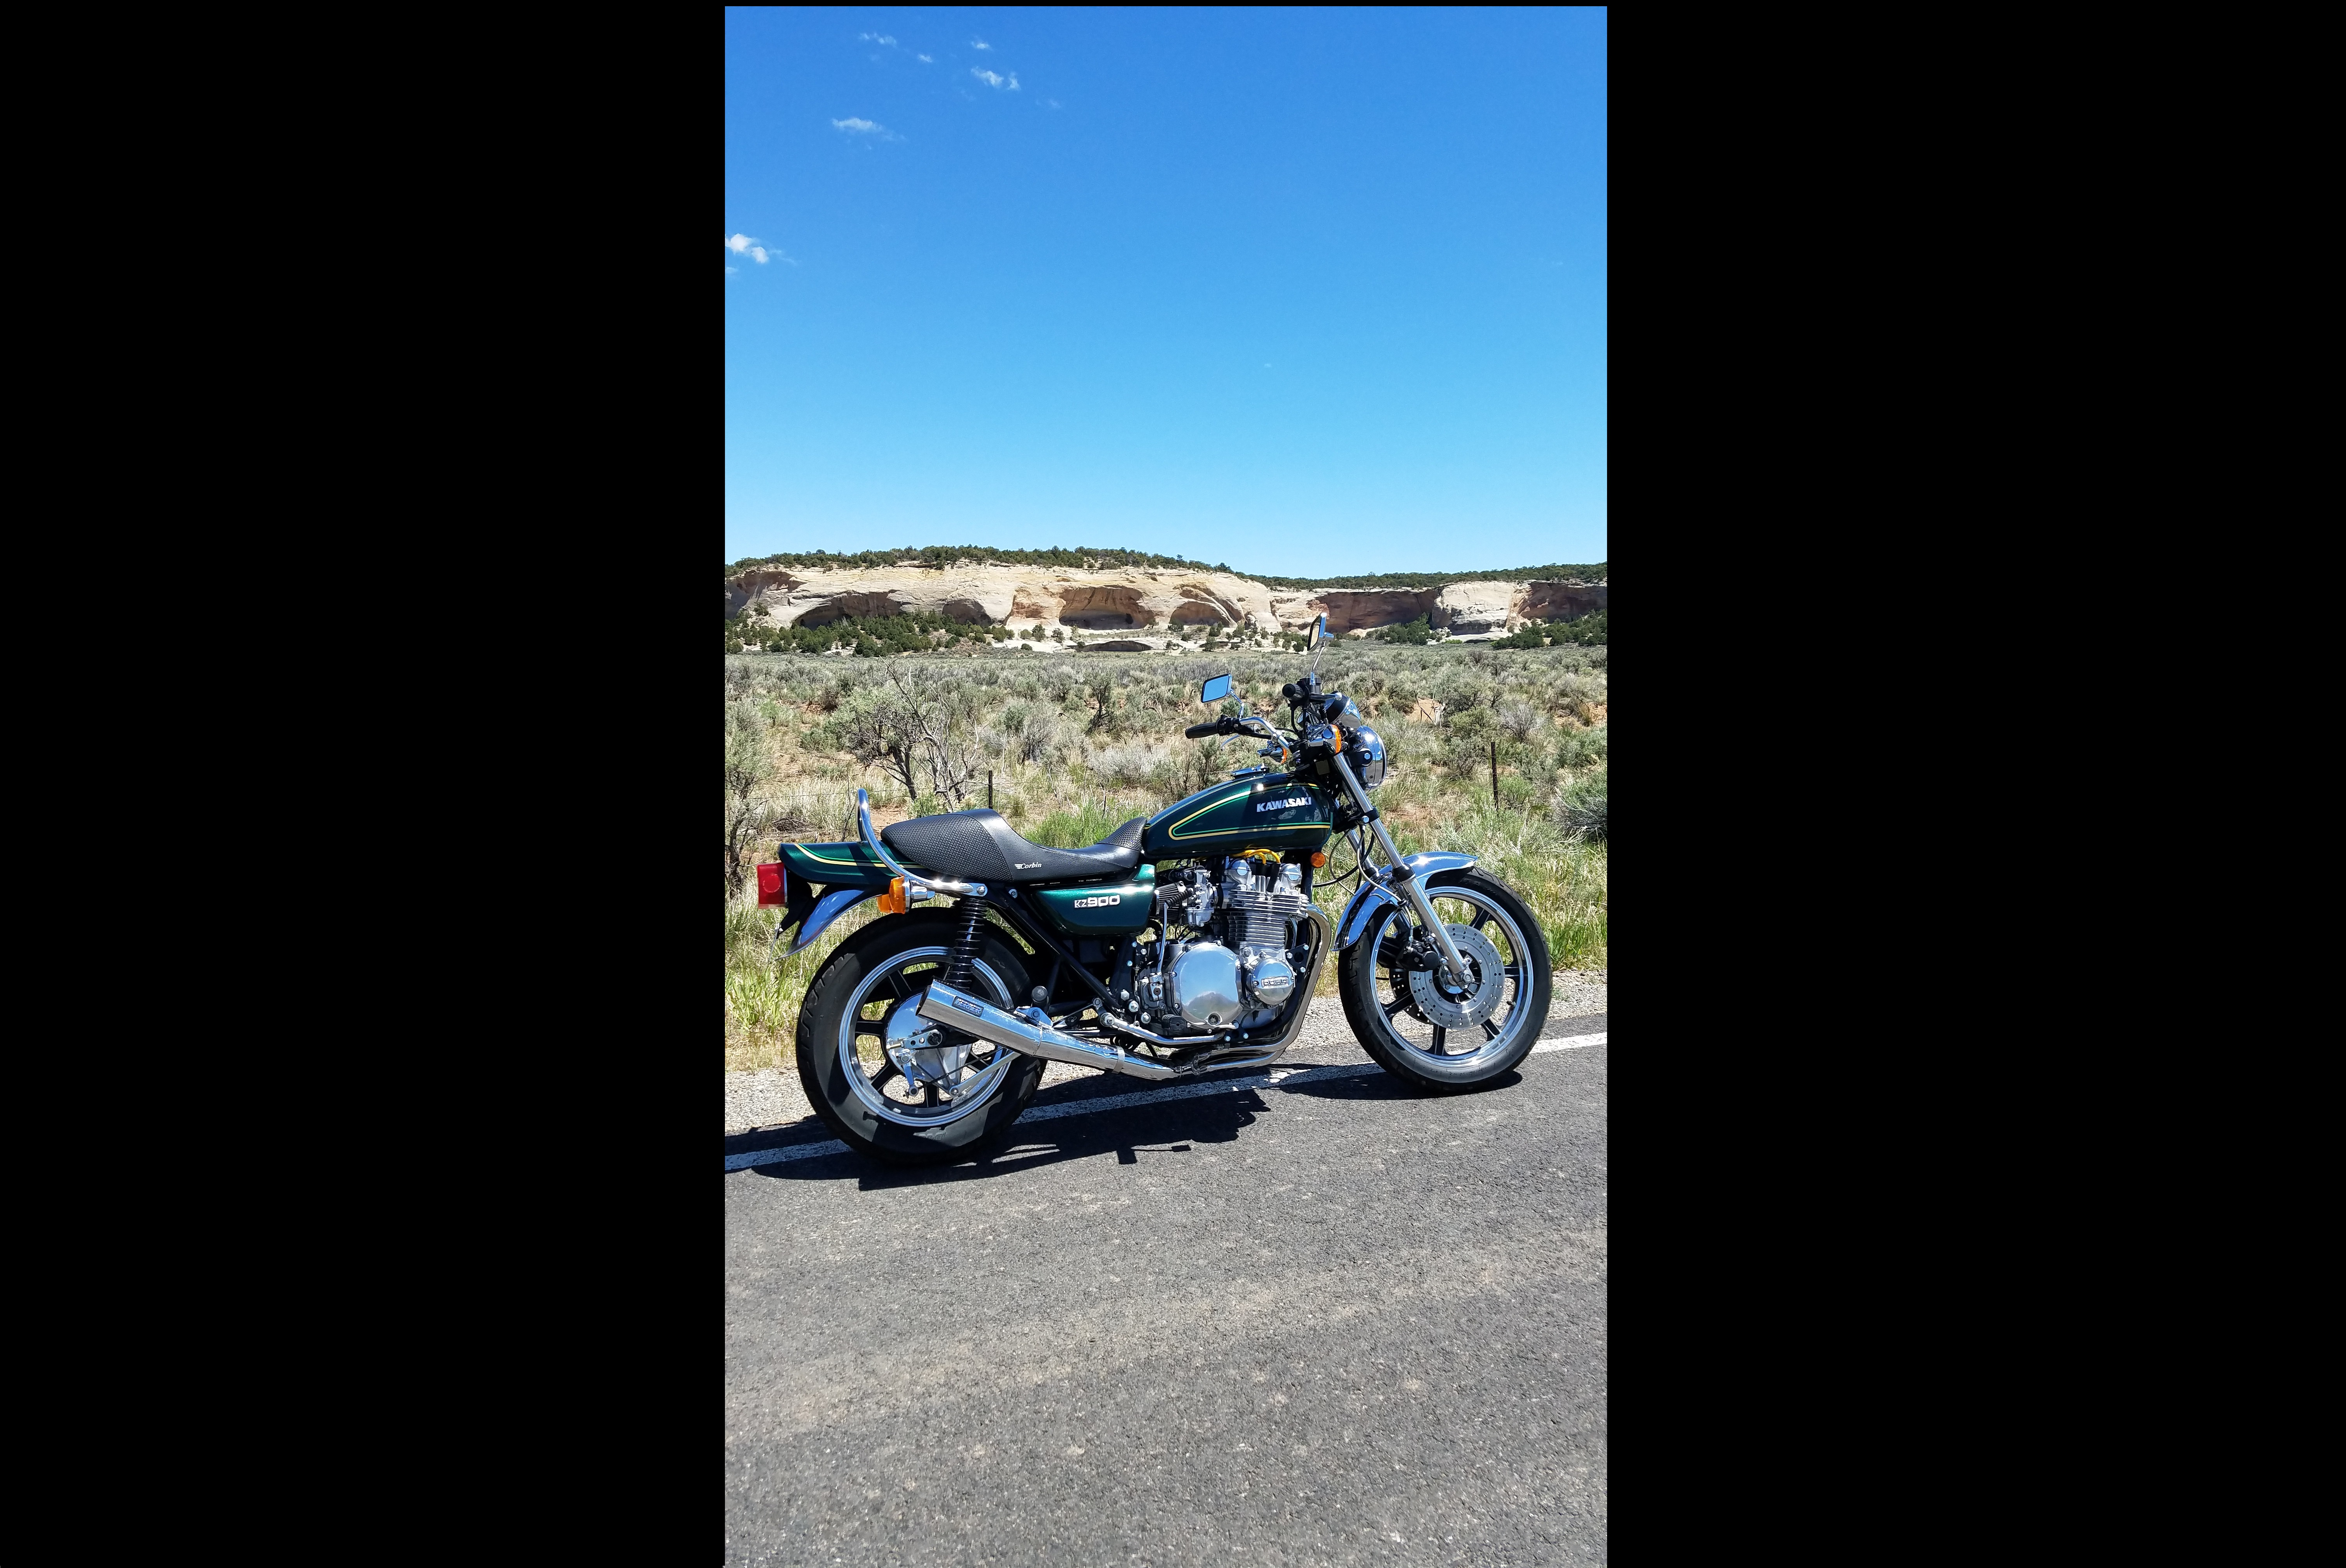 Bike Of The Month: Clyde Decrow's 1976 KZ900 A4